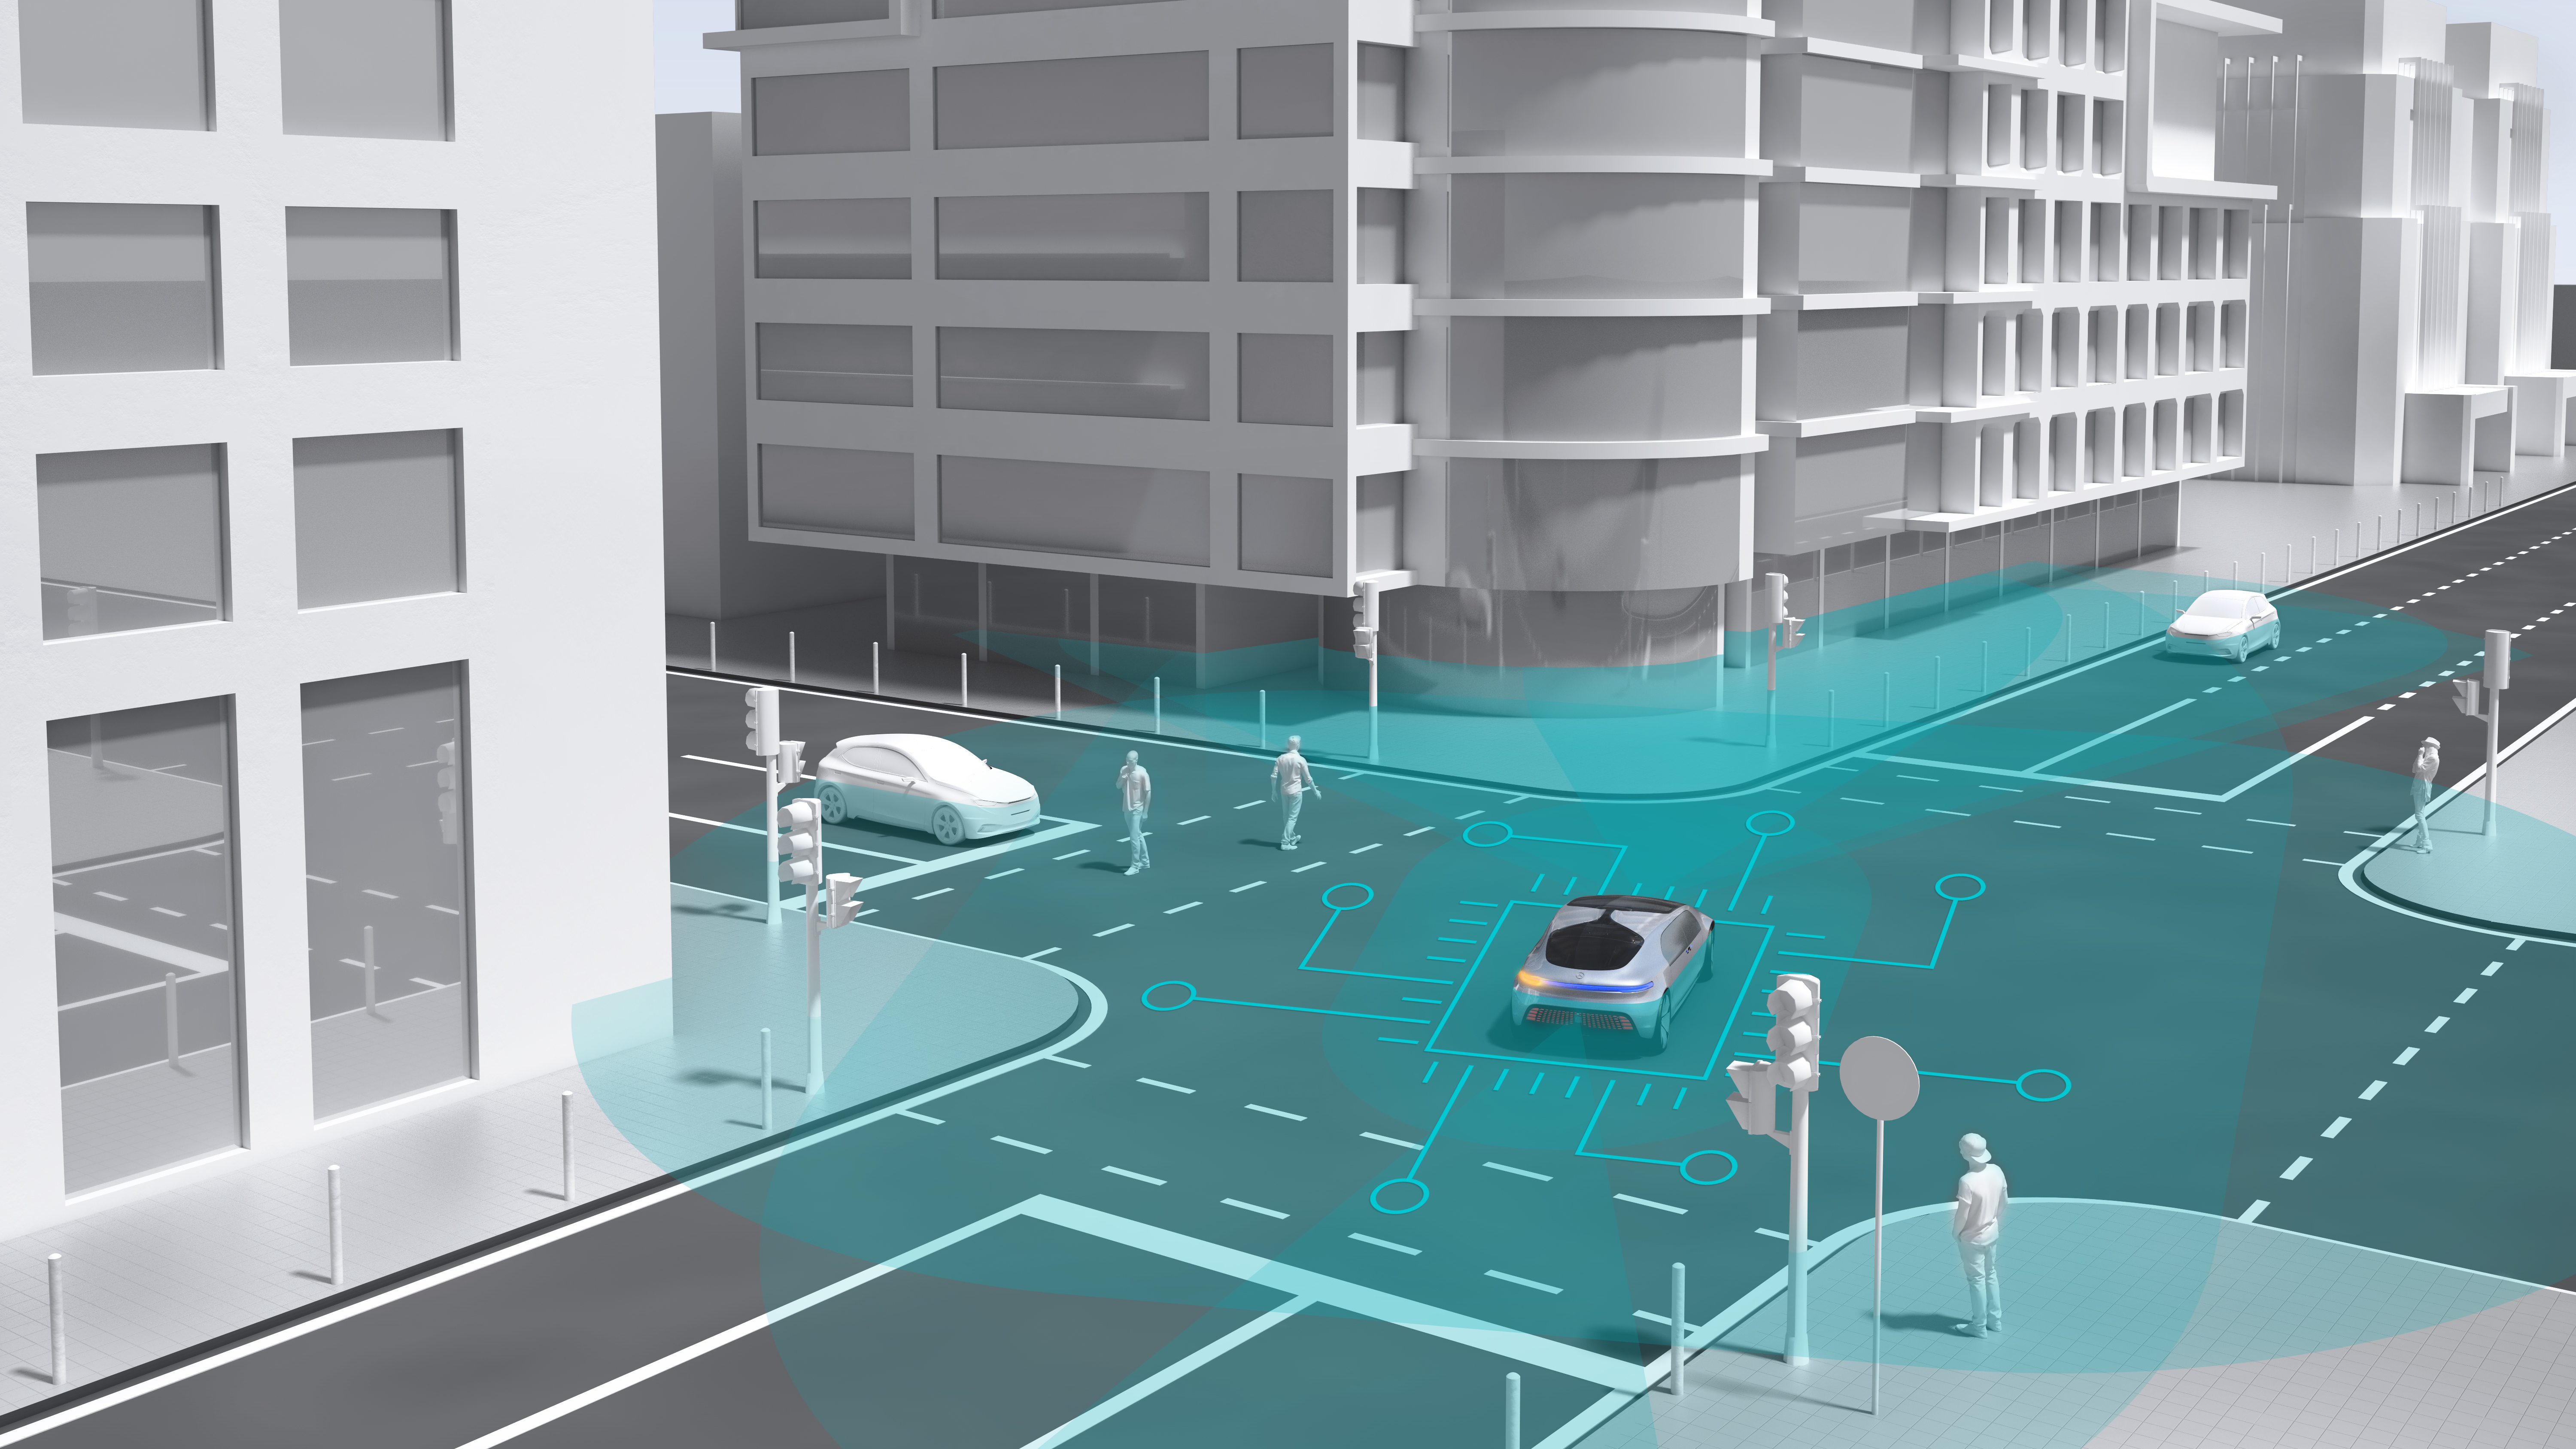 Automated driving in cities: Bosch and Daimler select Nvidia